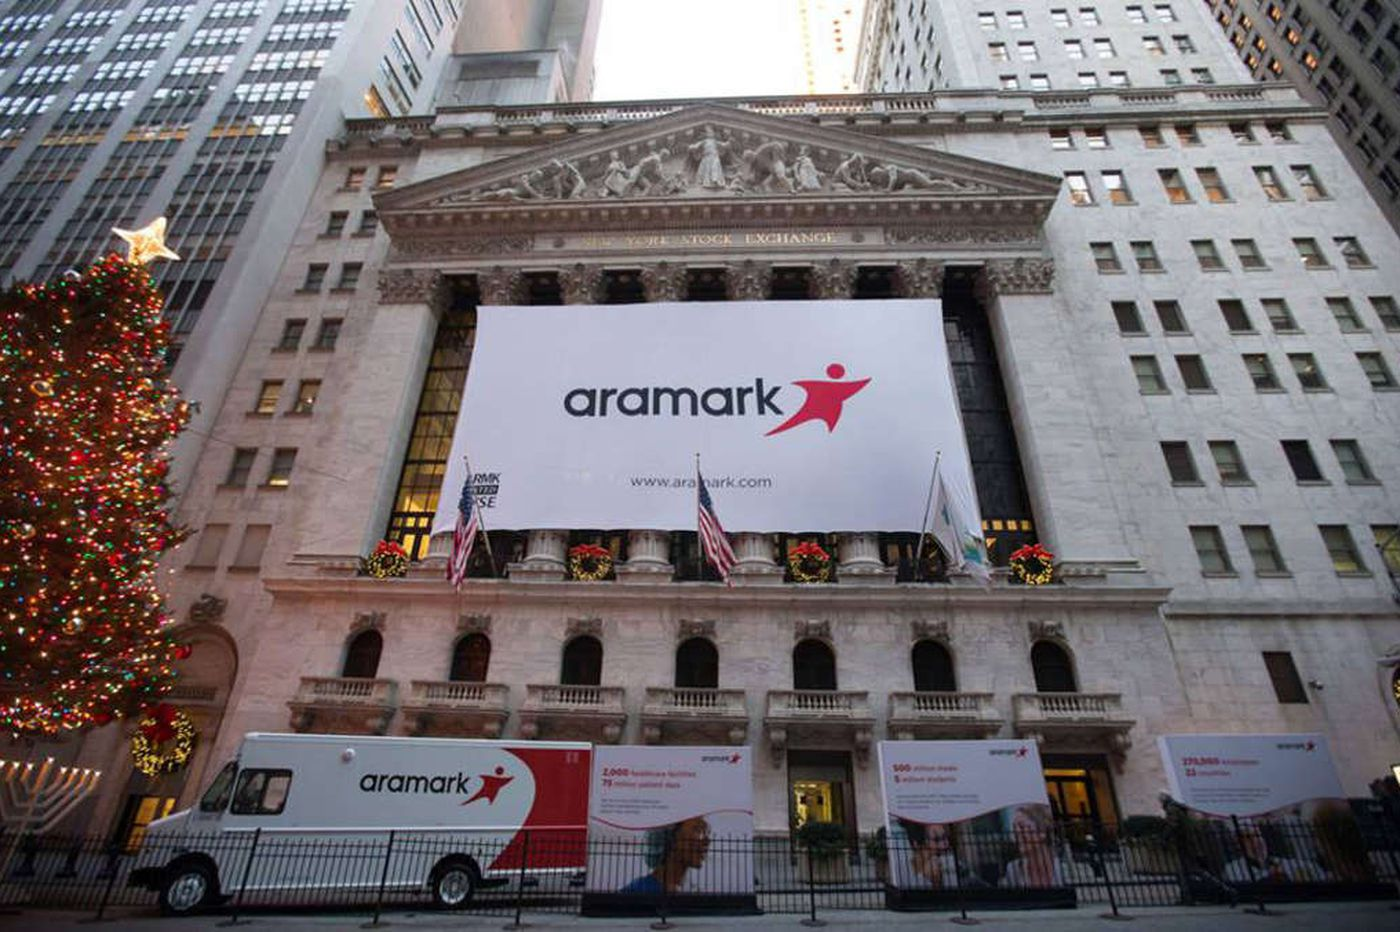 'Enough is enough': Wall Street analysts want Aramark top execs pushed out as growth lags